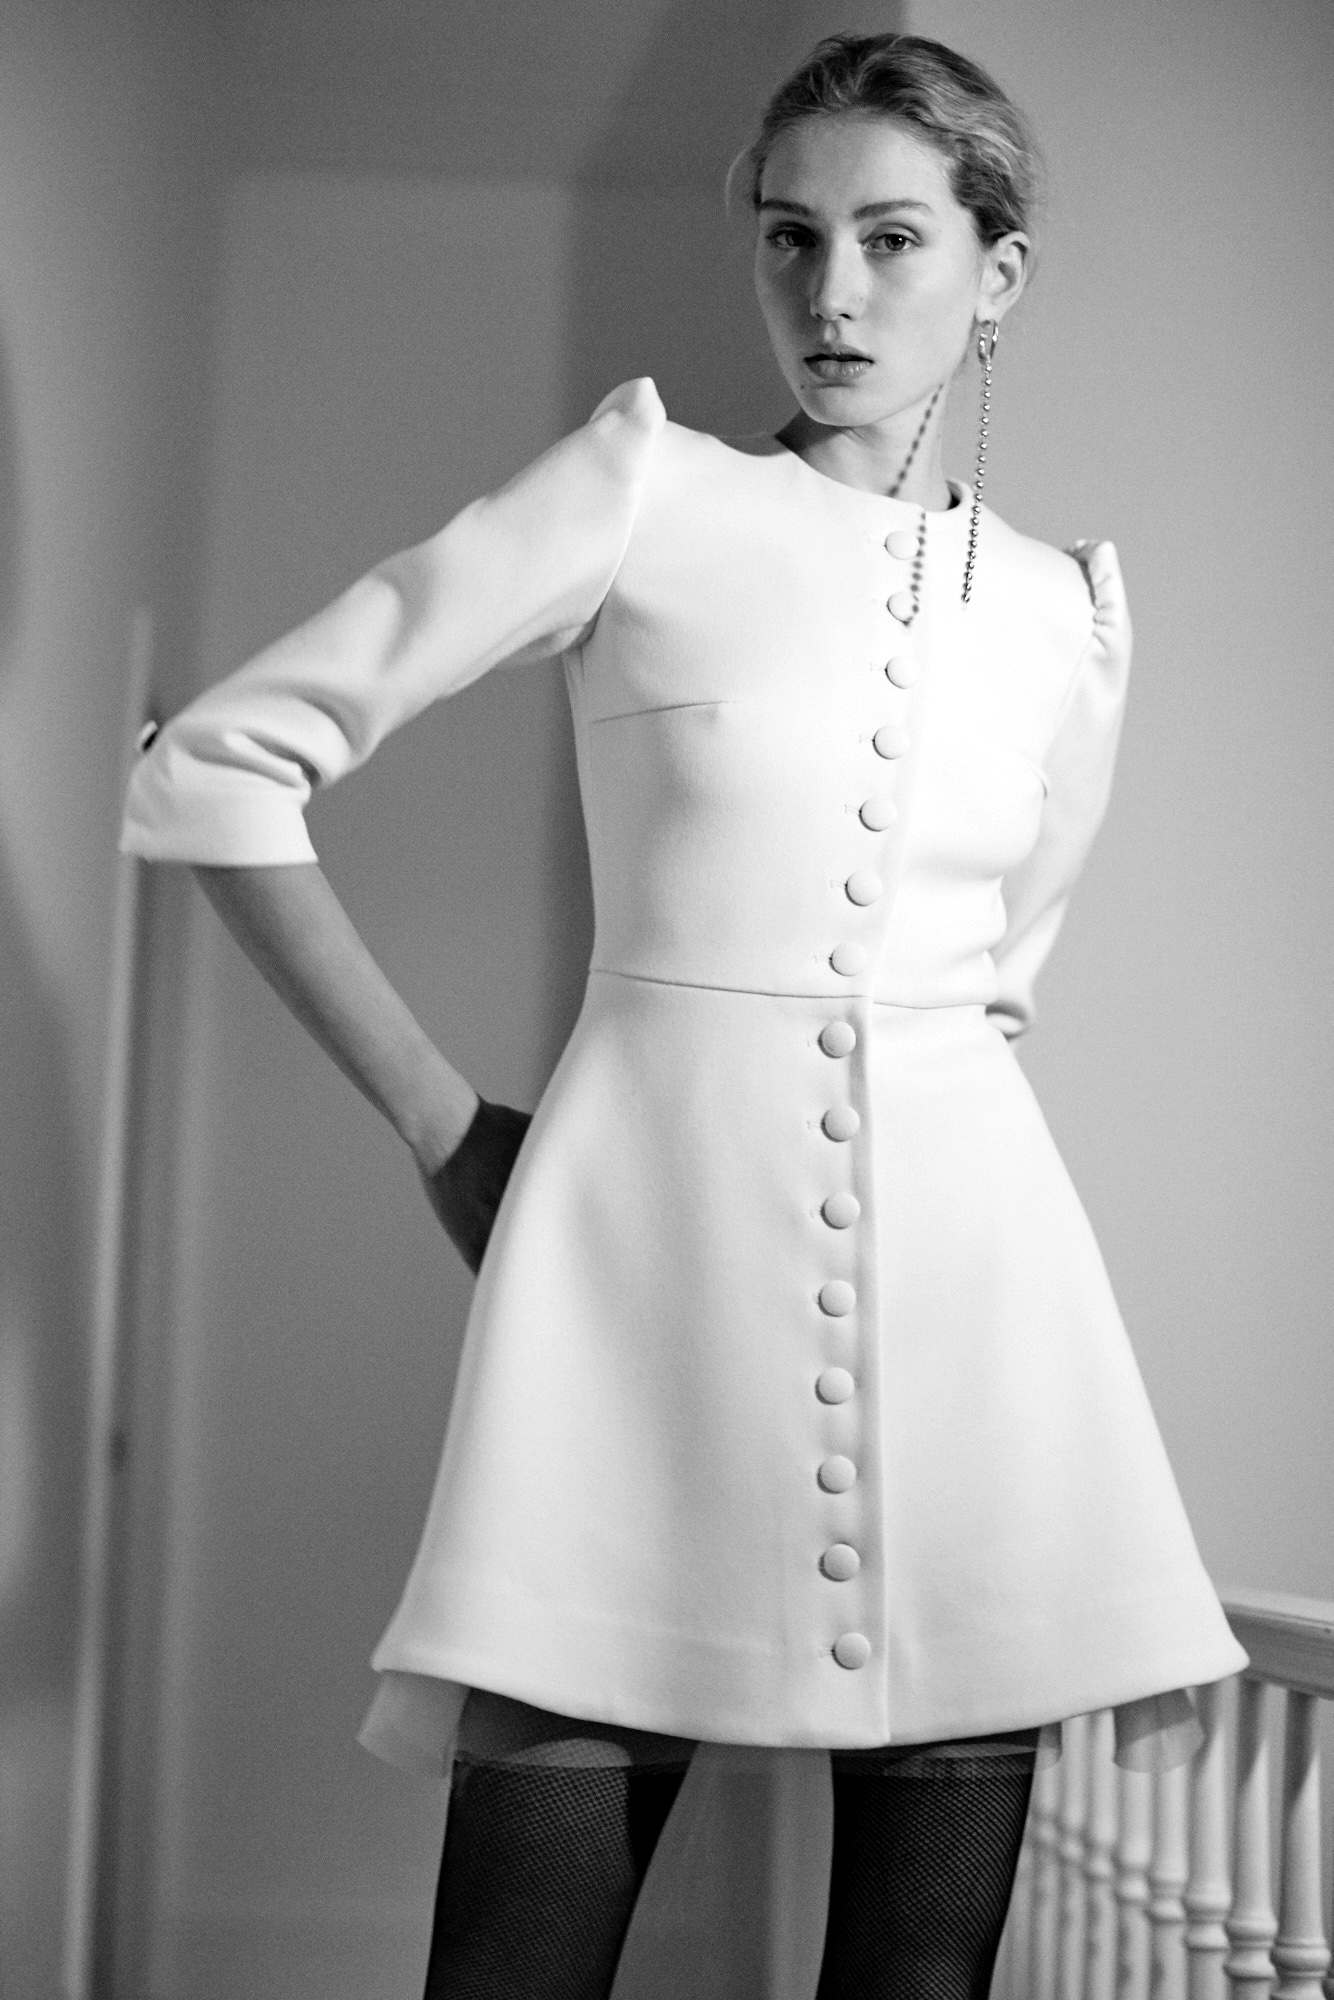 Lein wedding dress spring 2019 short a-line jacket dress with buttons